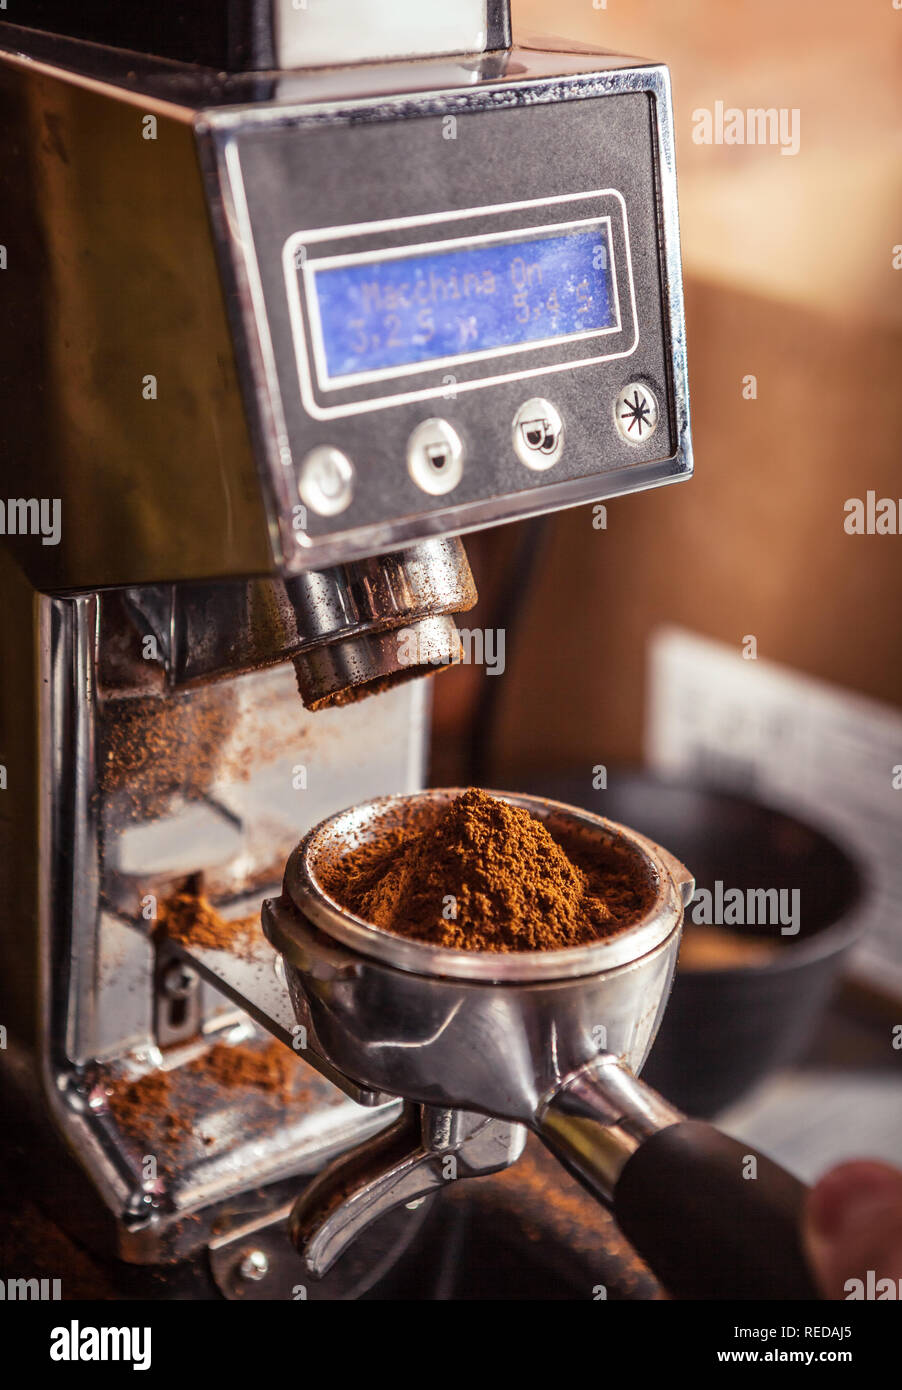 Cropped image of barista using coffee grinder holding portafilter with ground coffee. Stock Photo